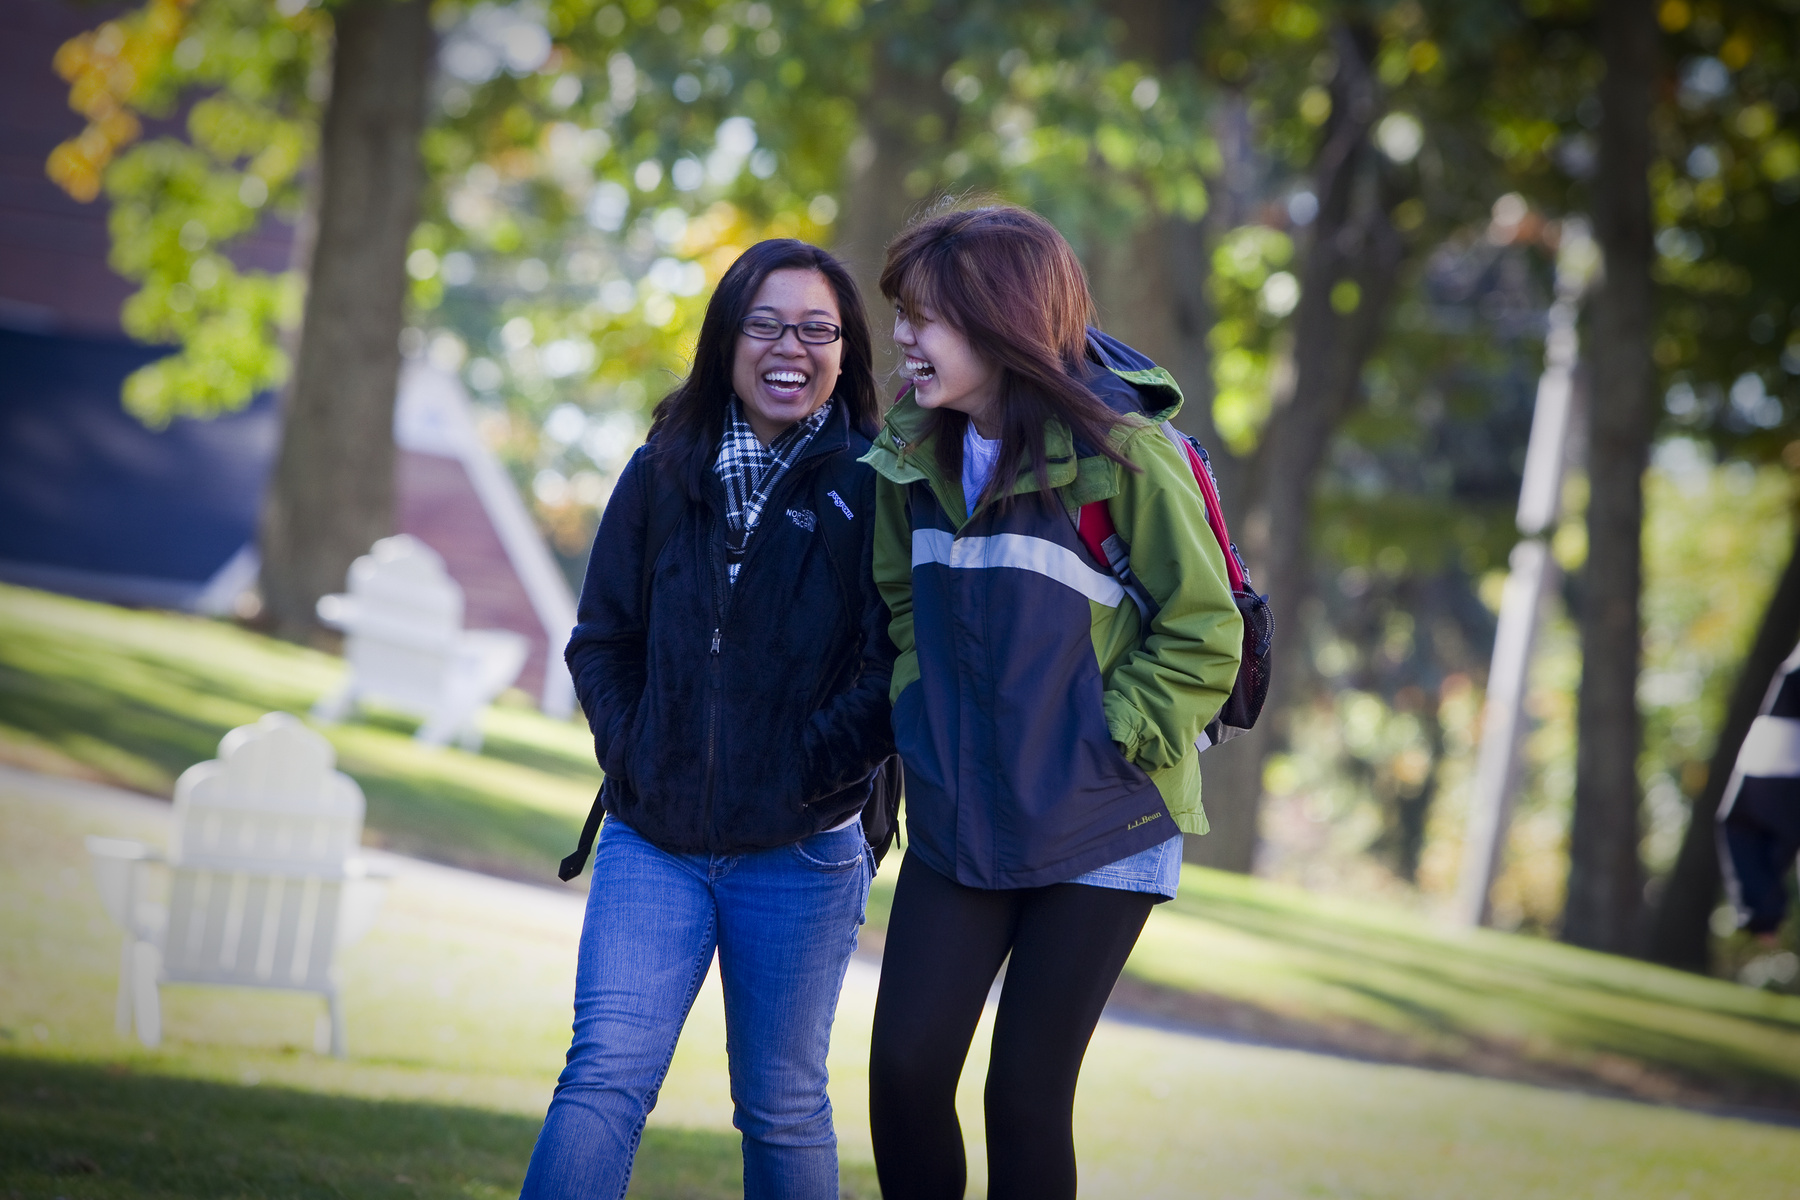 Two students share a laugh as they walk on campus